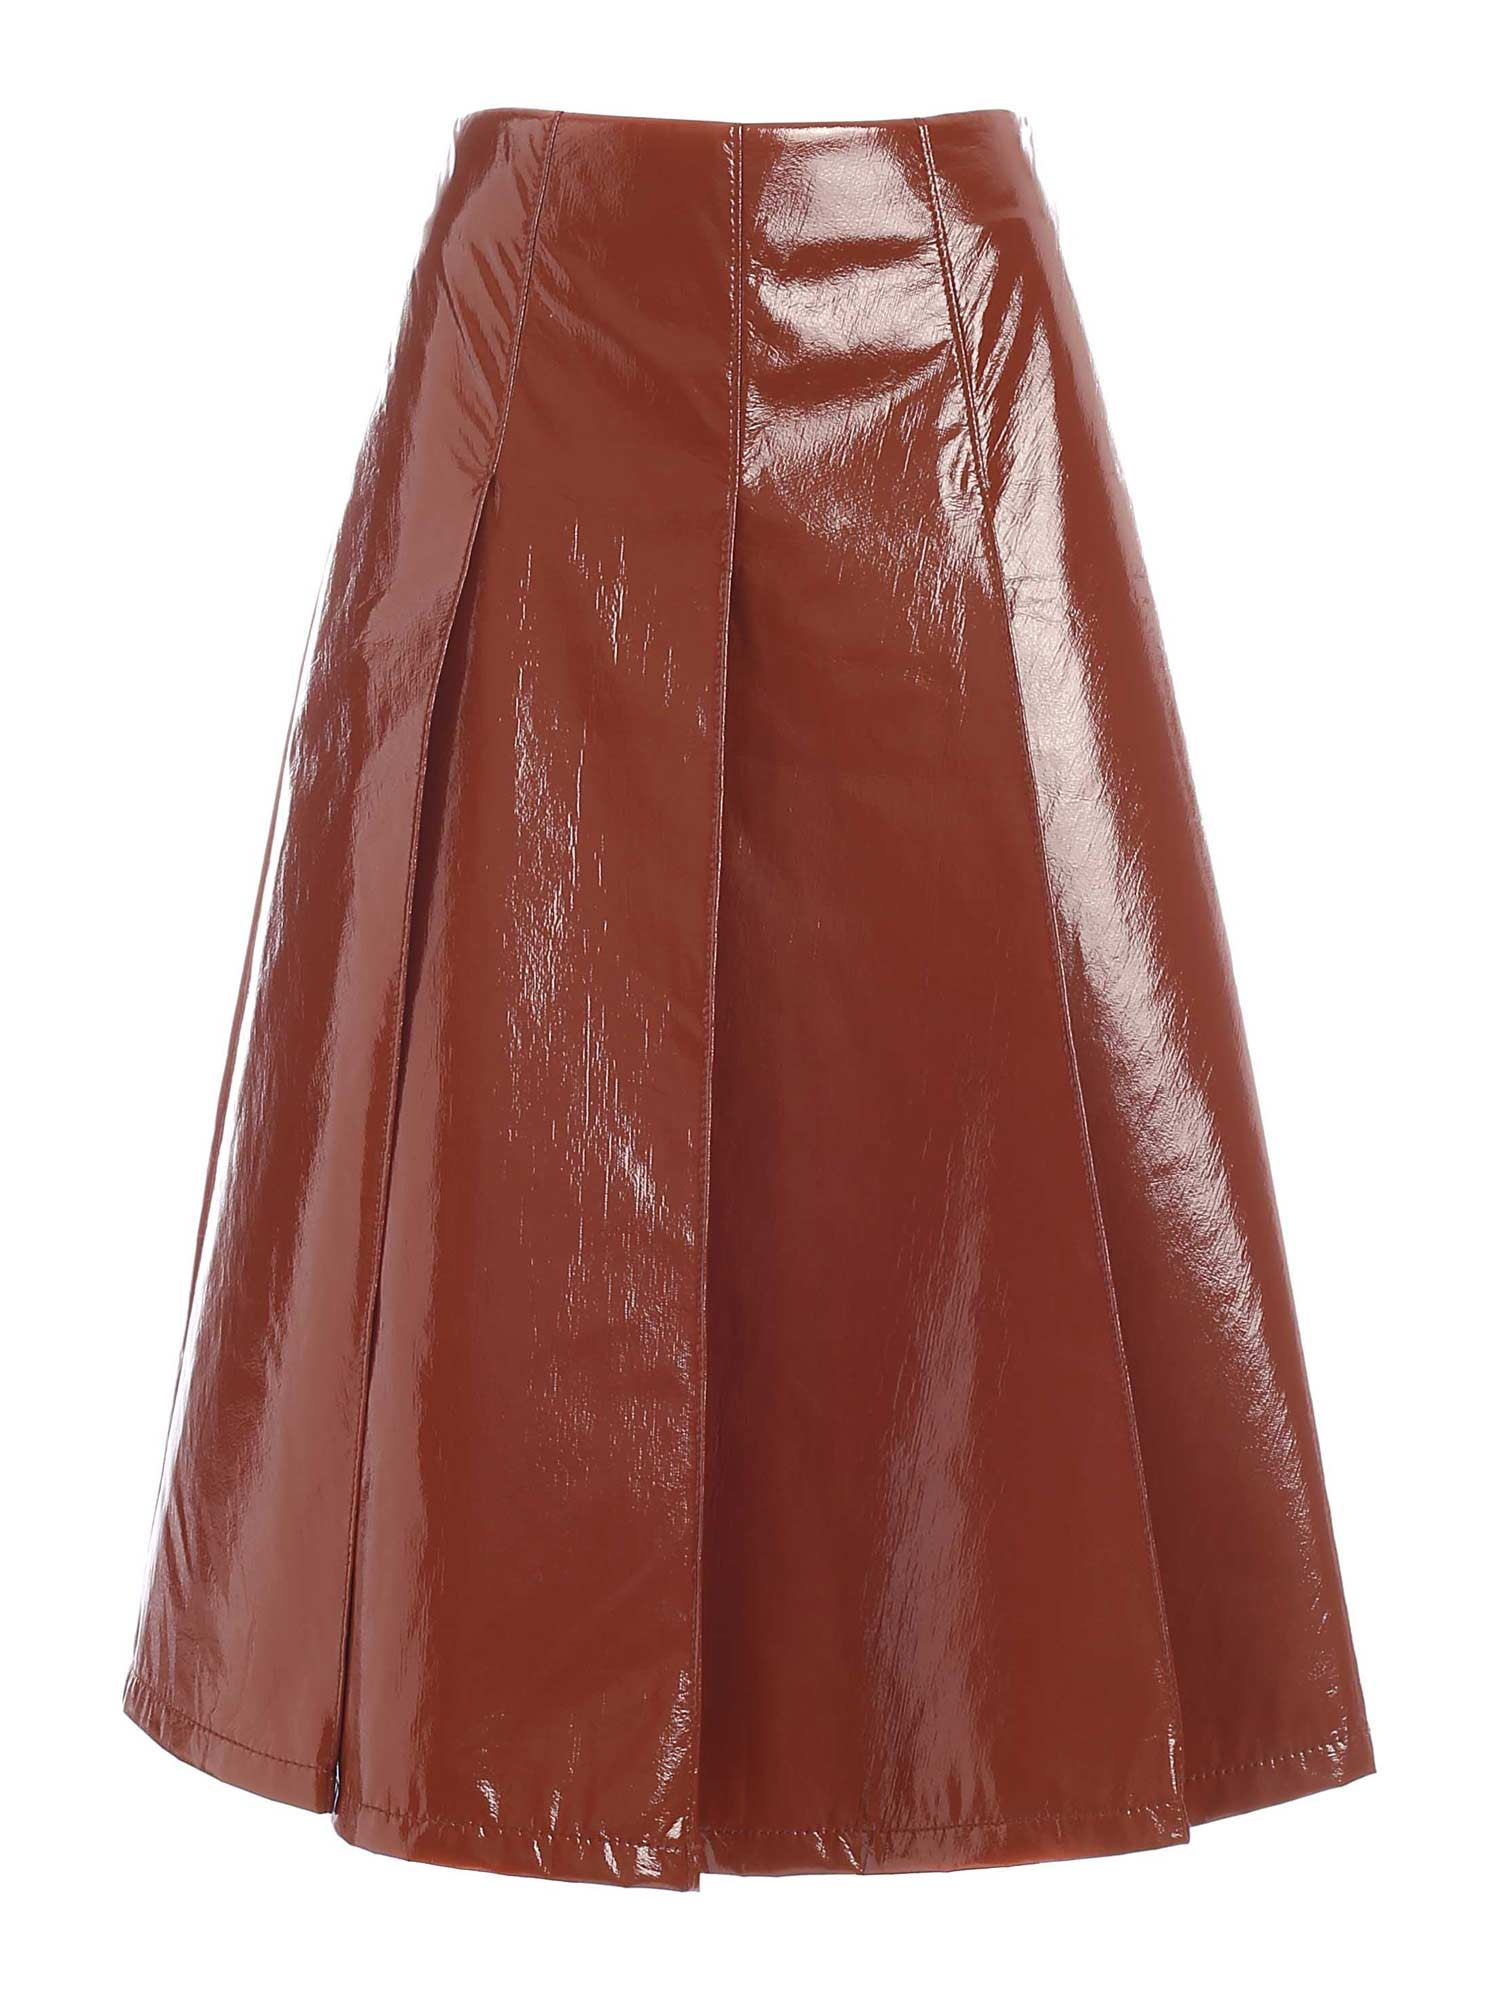 Vivetta PLEATED SKIRT IN BROWN